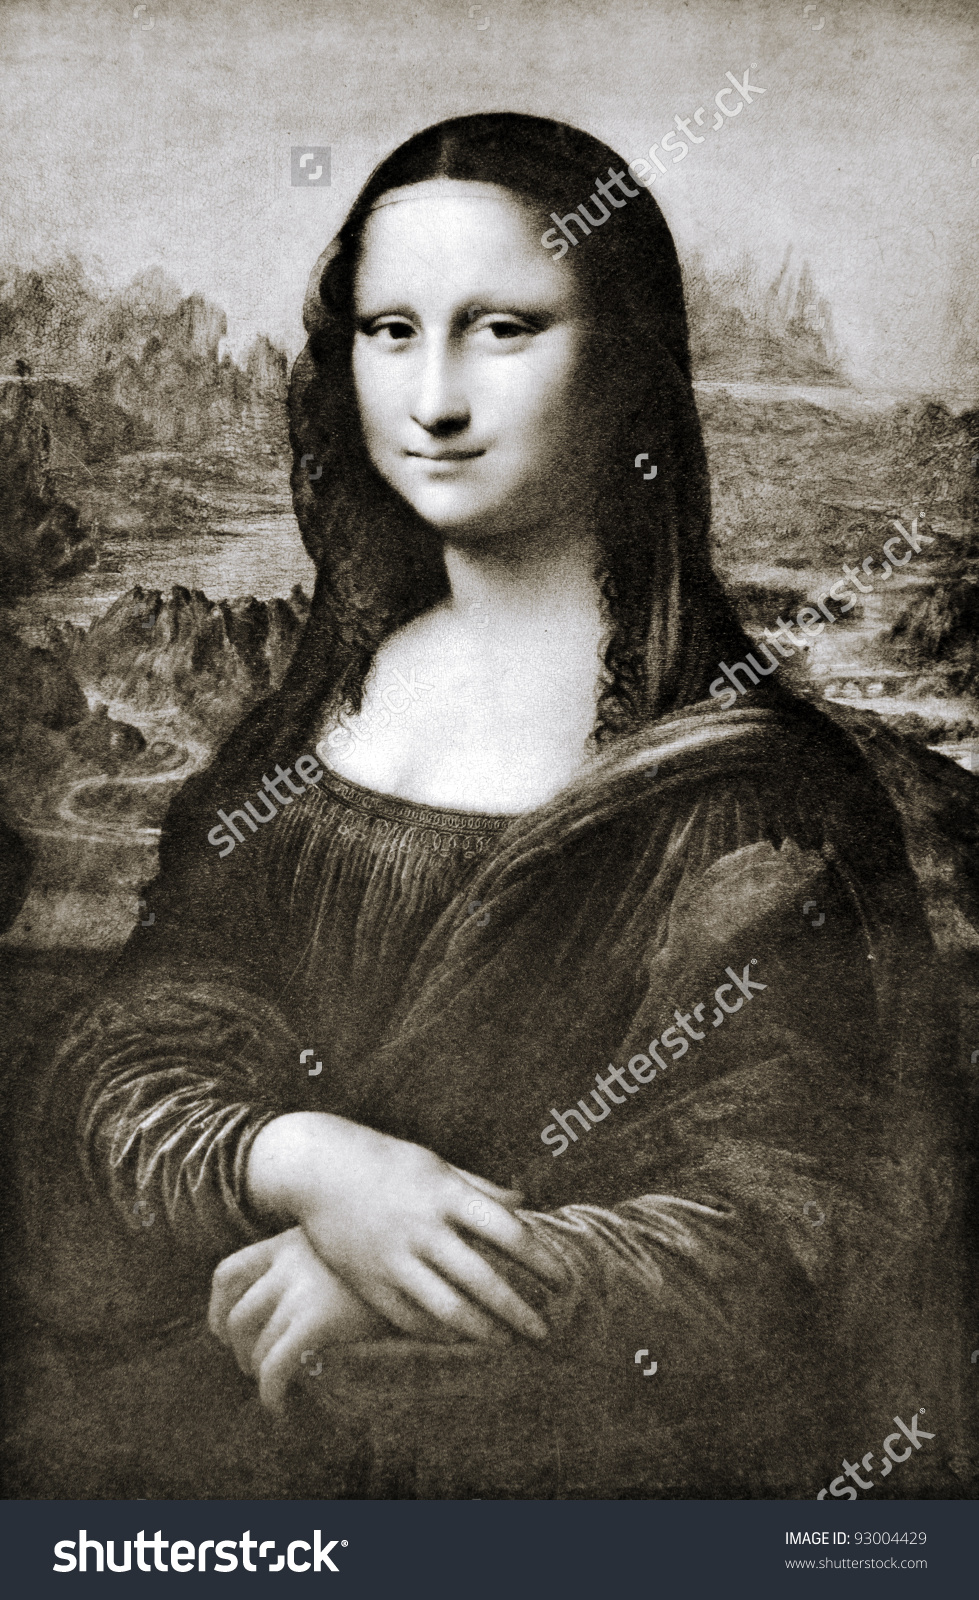 Leonardo Da Vinci 1452 1519 Mona Stock Photo 93004429.